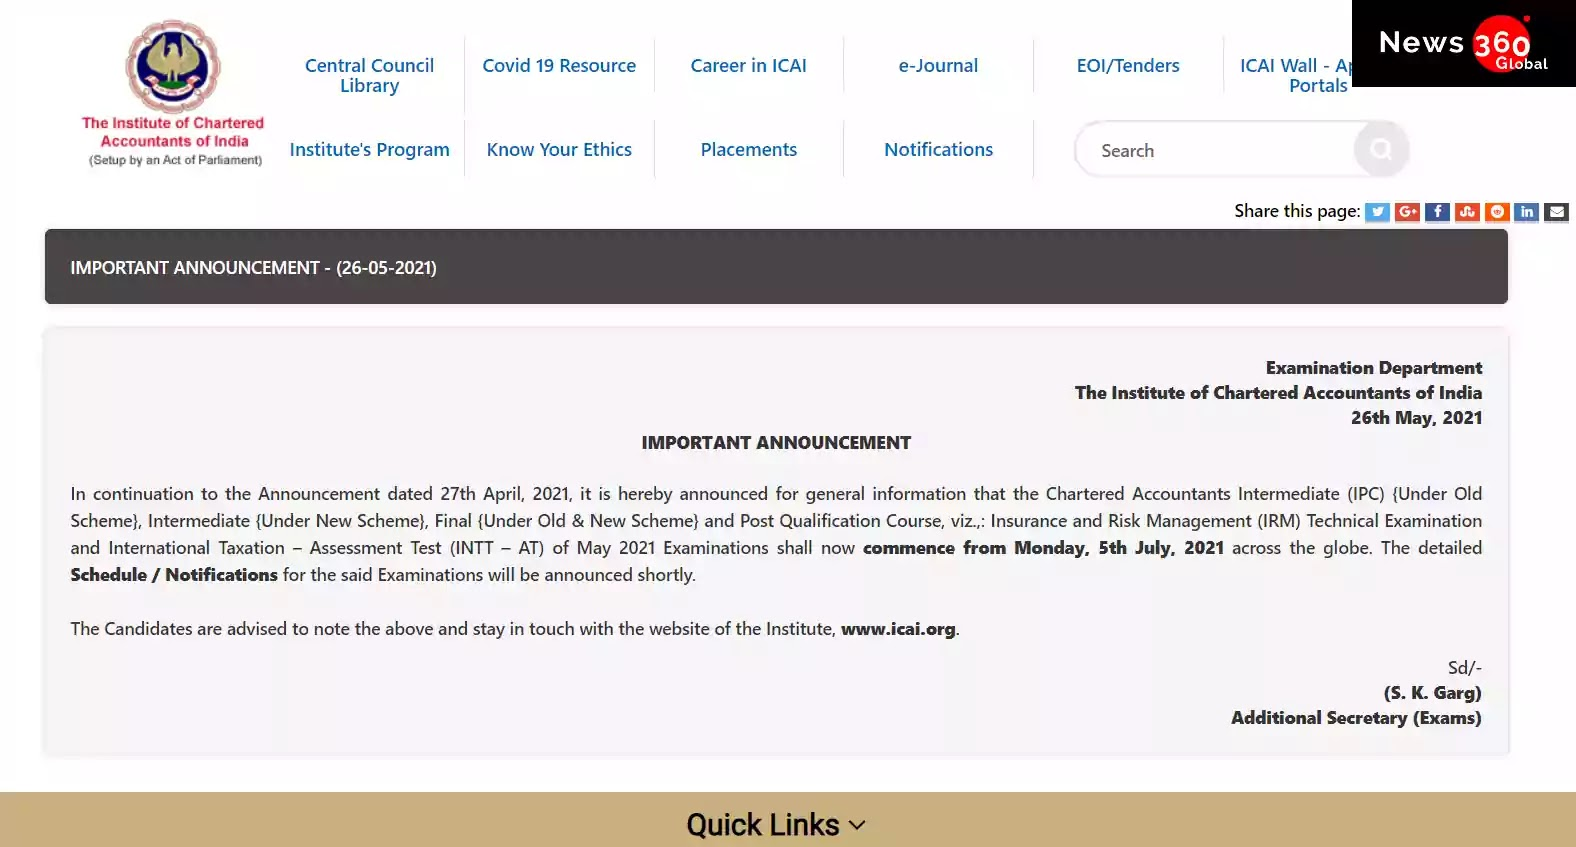 CA Exam date May 2021 ICAI Released Notice about Exam date for Inter, Final & PQC Courses  Check CA 2021 New Exam Dates and Official Notice Here